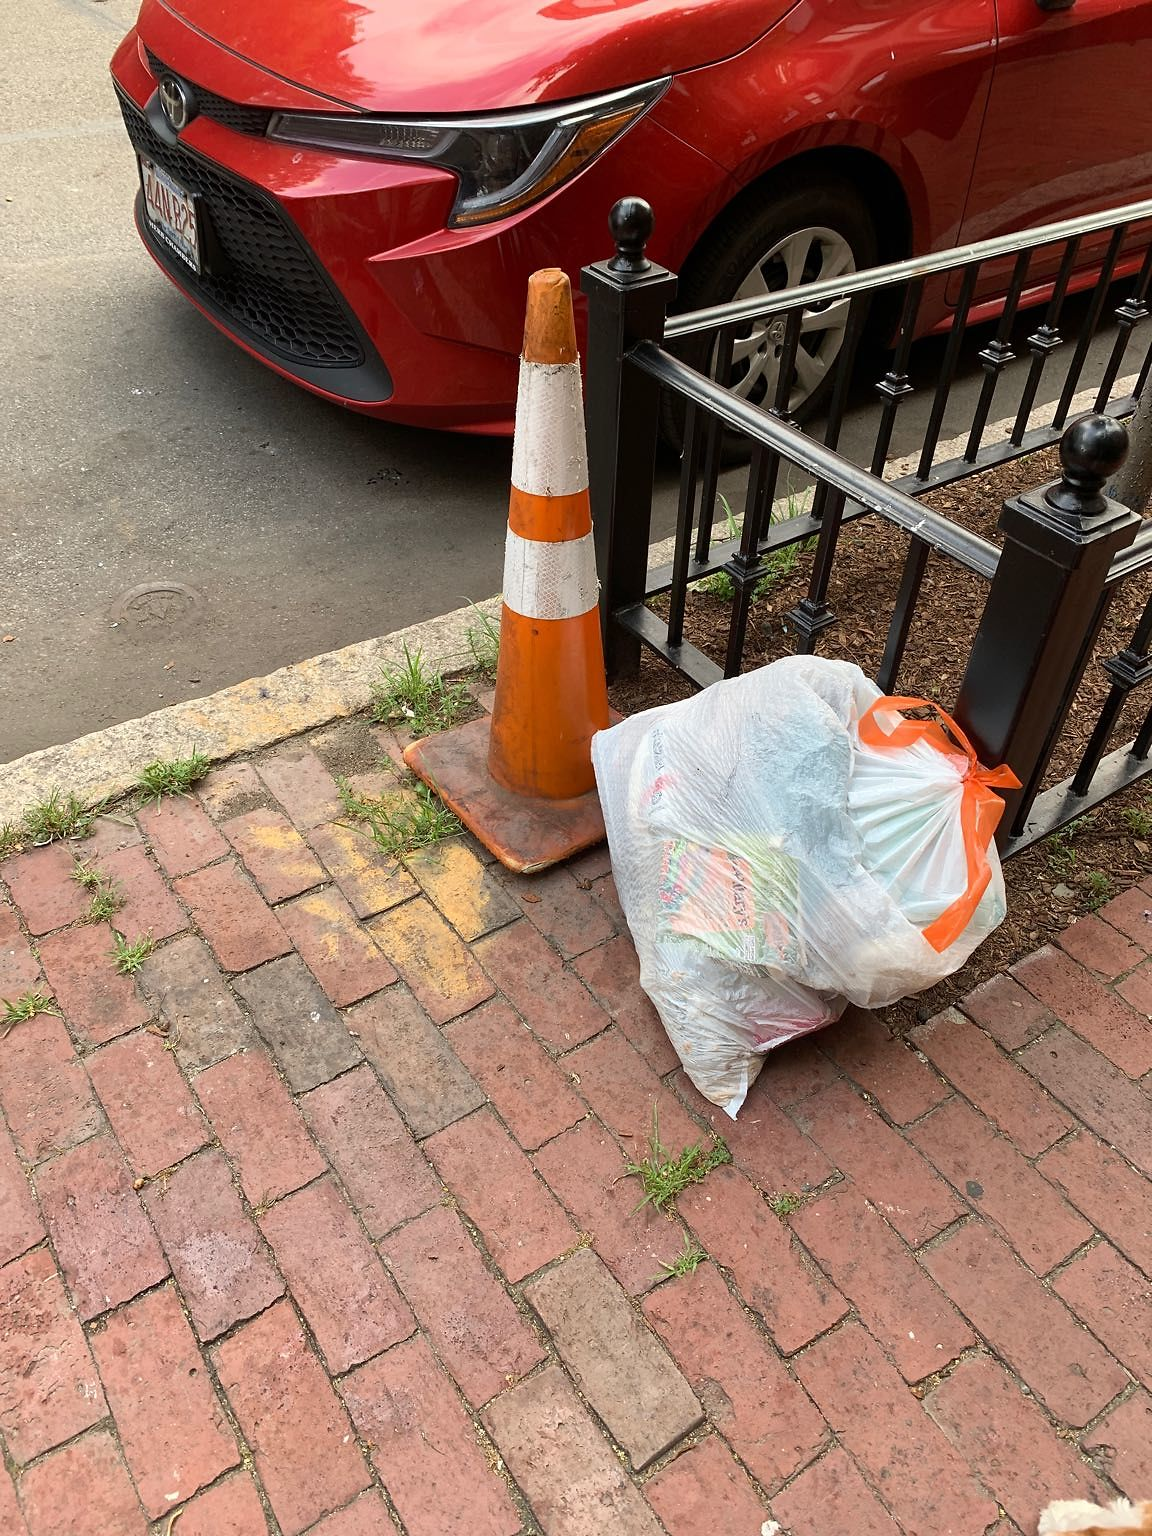 Trash and a street cone